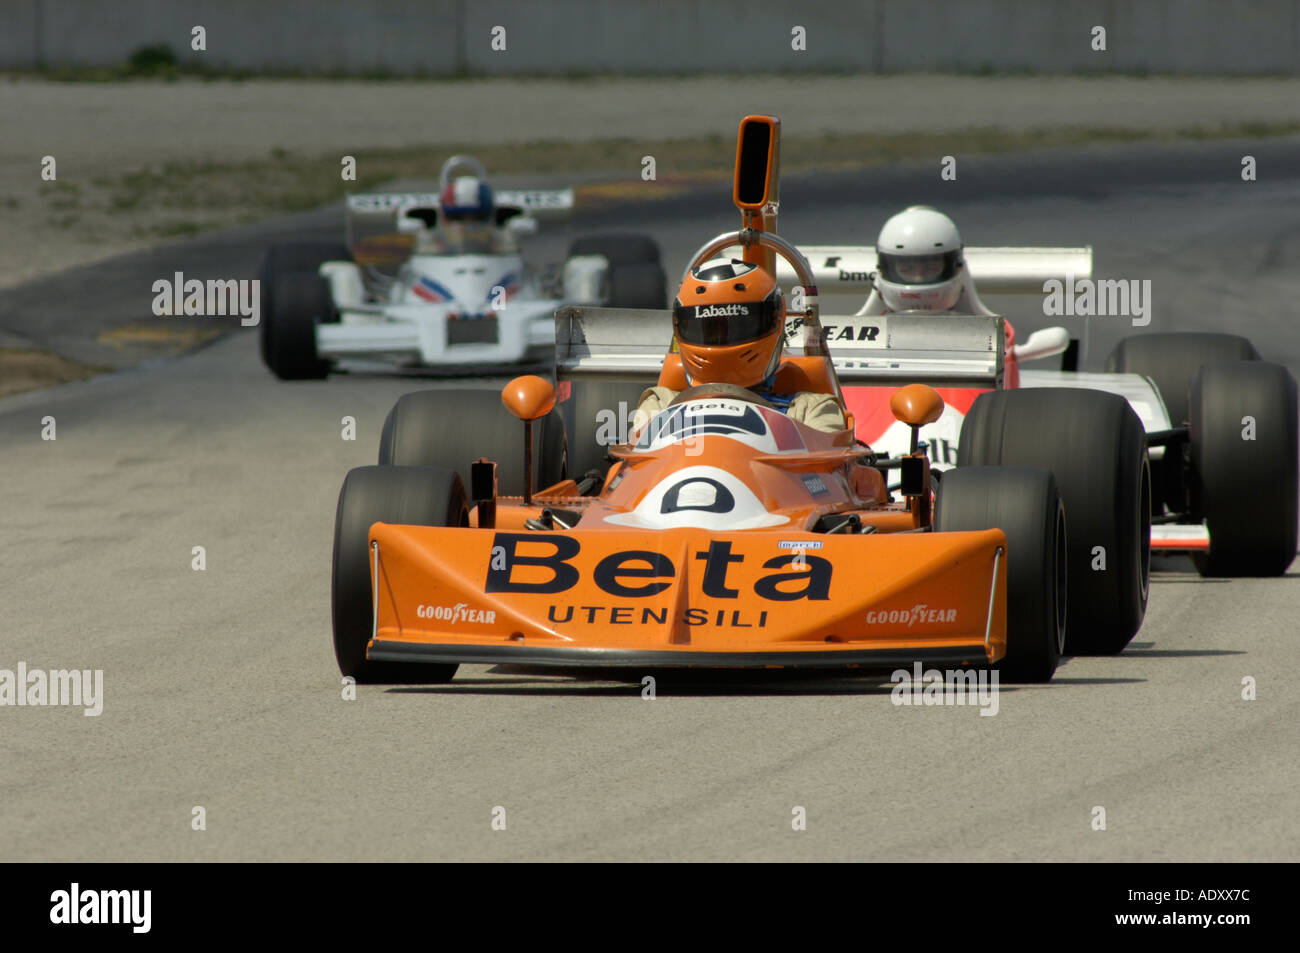 Garage Renault Blain Formula 1 Orange Car Racing Stock Photos Formula 1 Orange Car